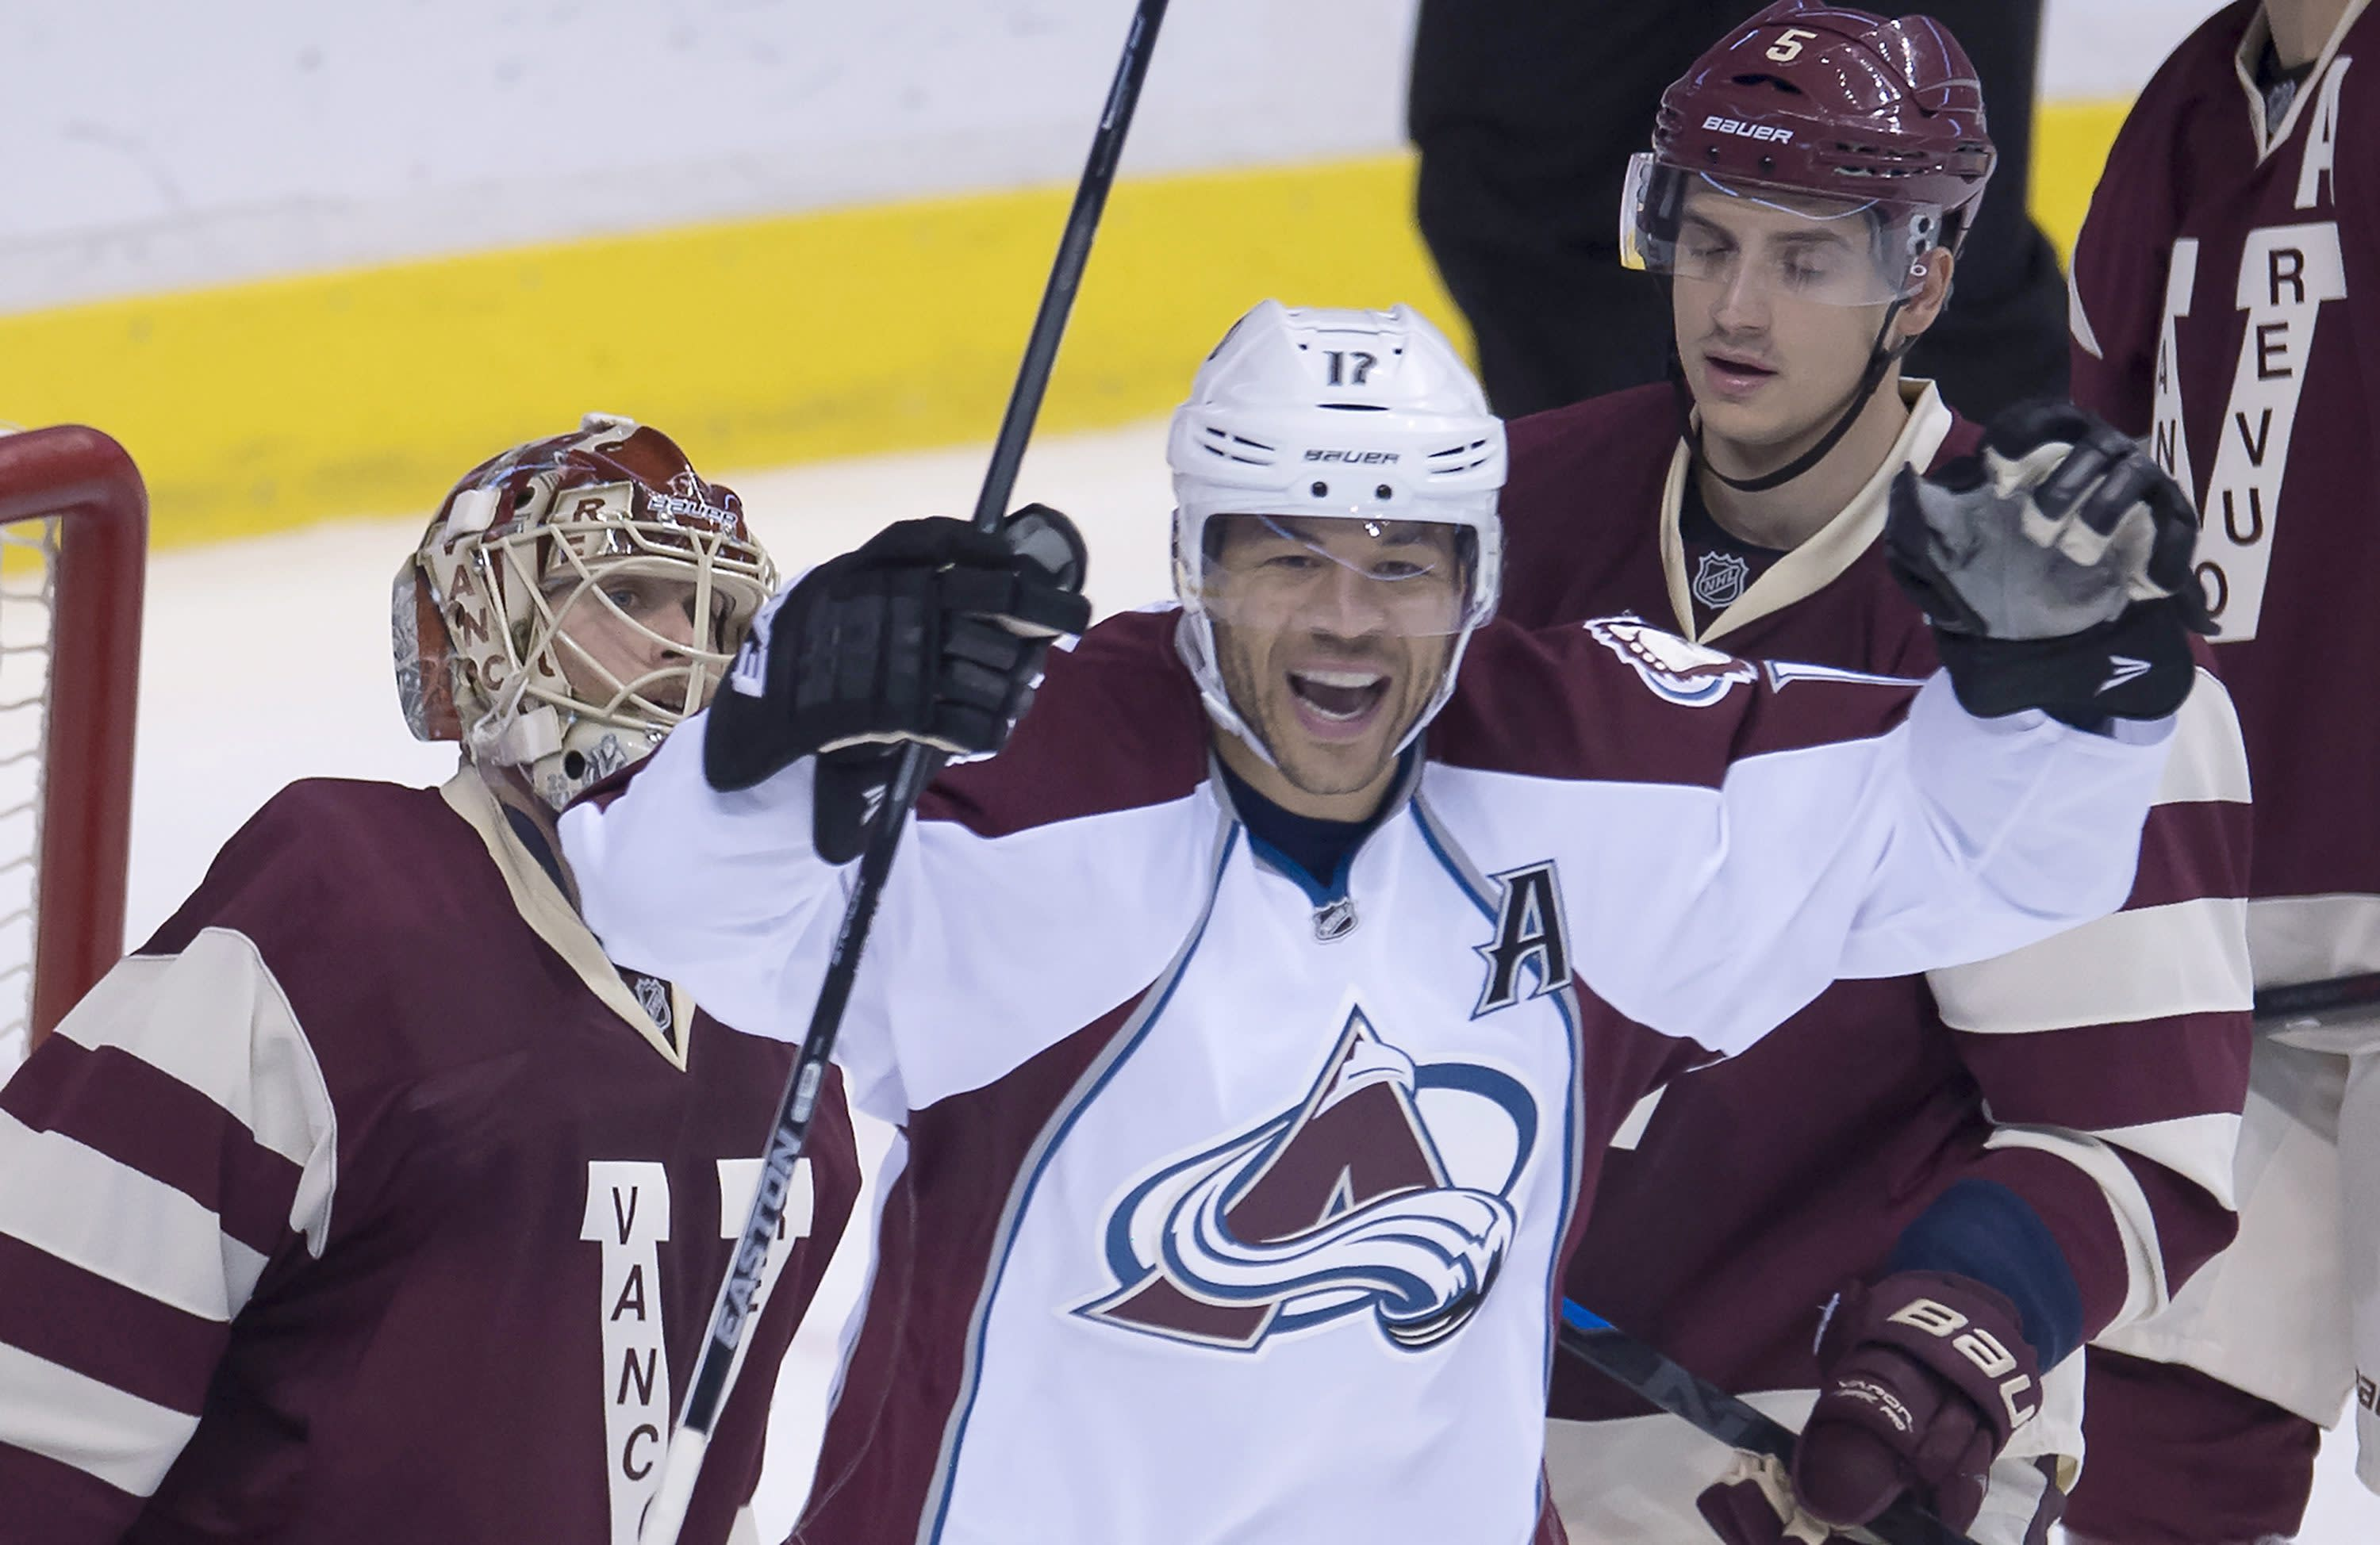 Avalanche end 3-game skid, top Canucks 4-1